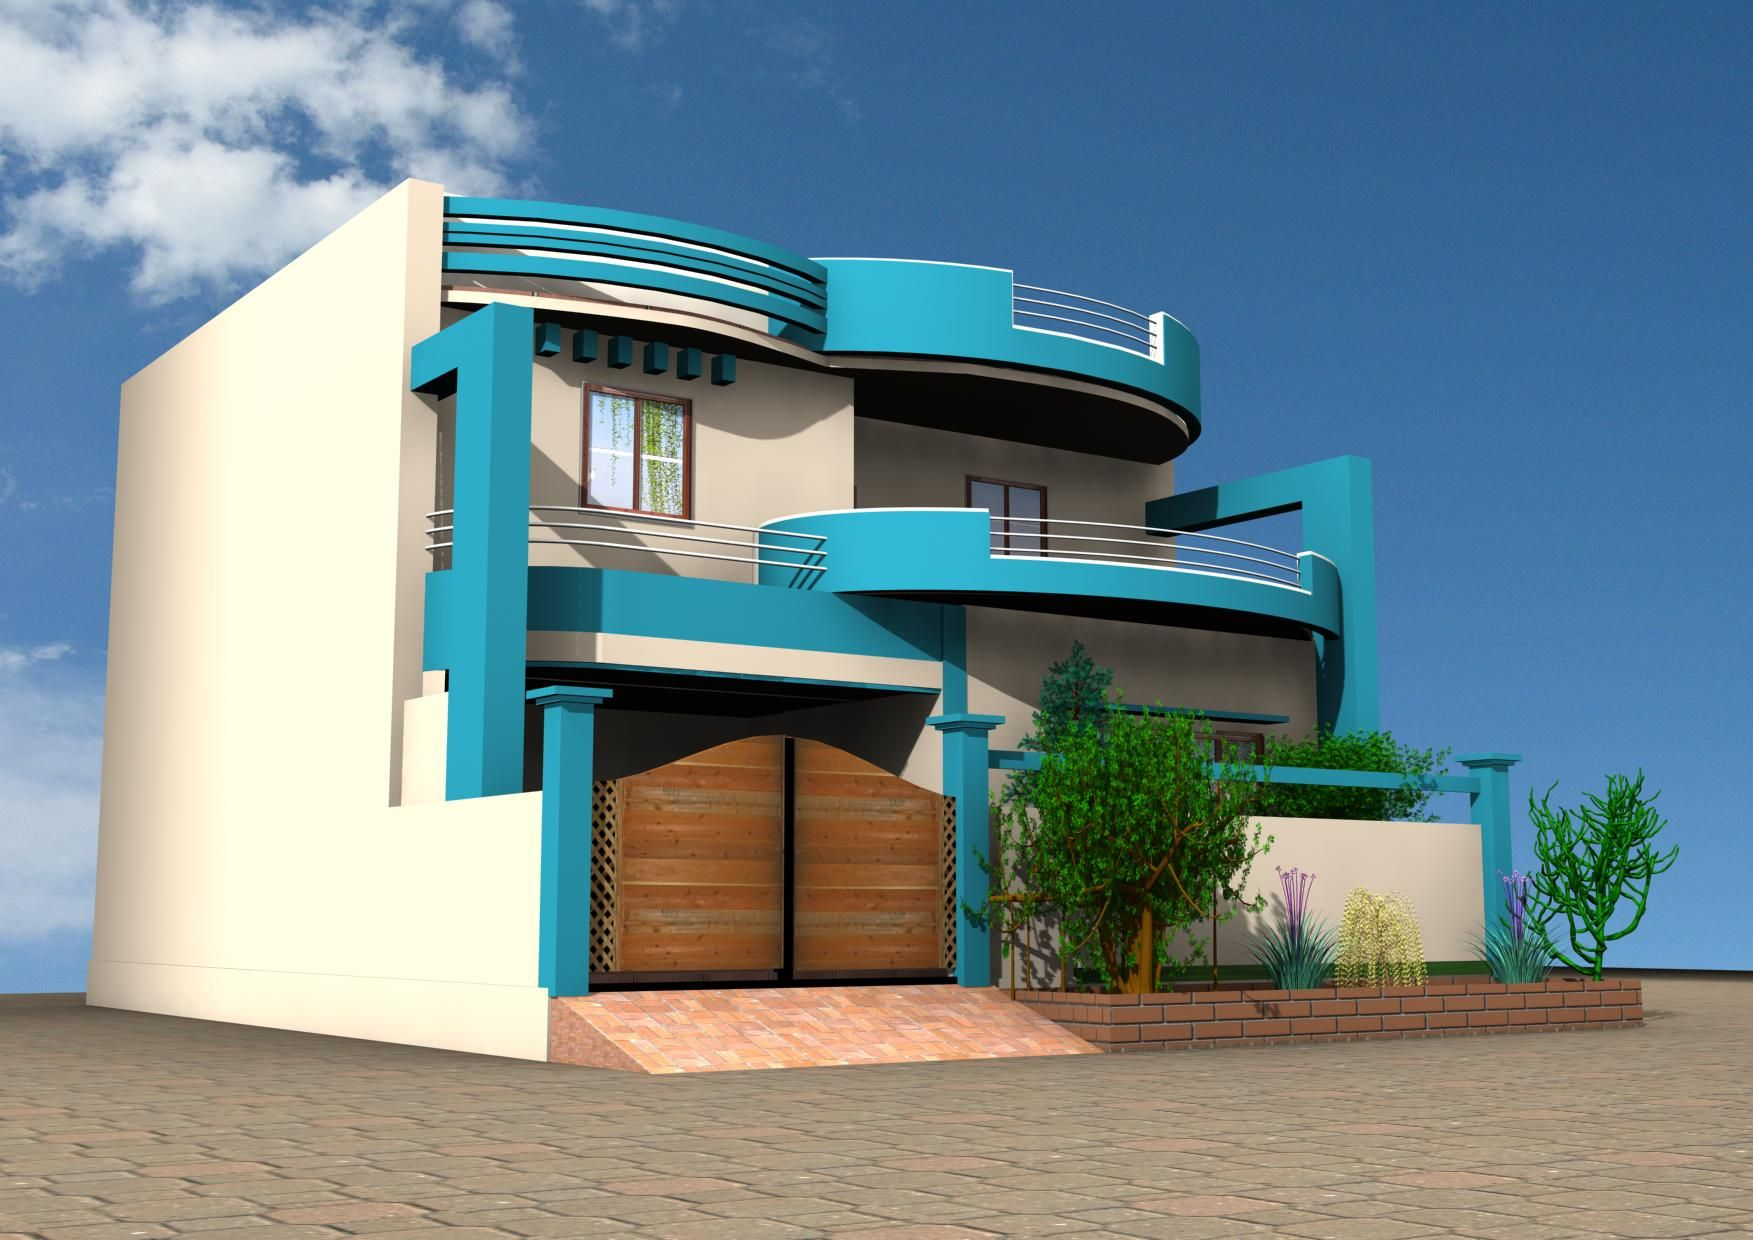 3d home design images hd 1080p for Design house exterior online